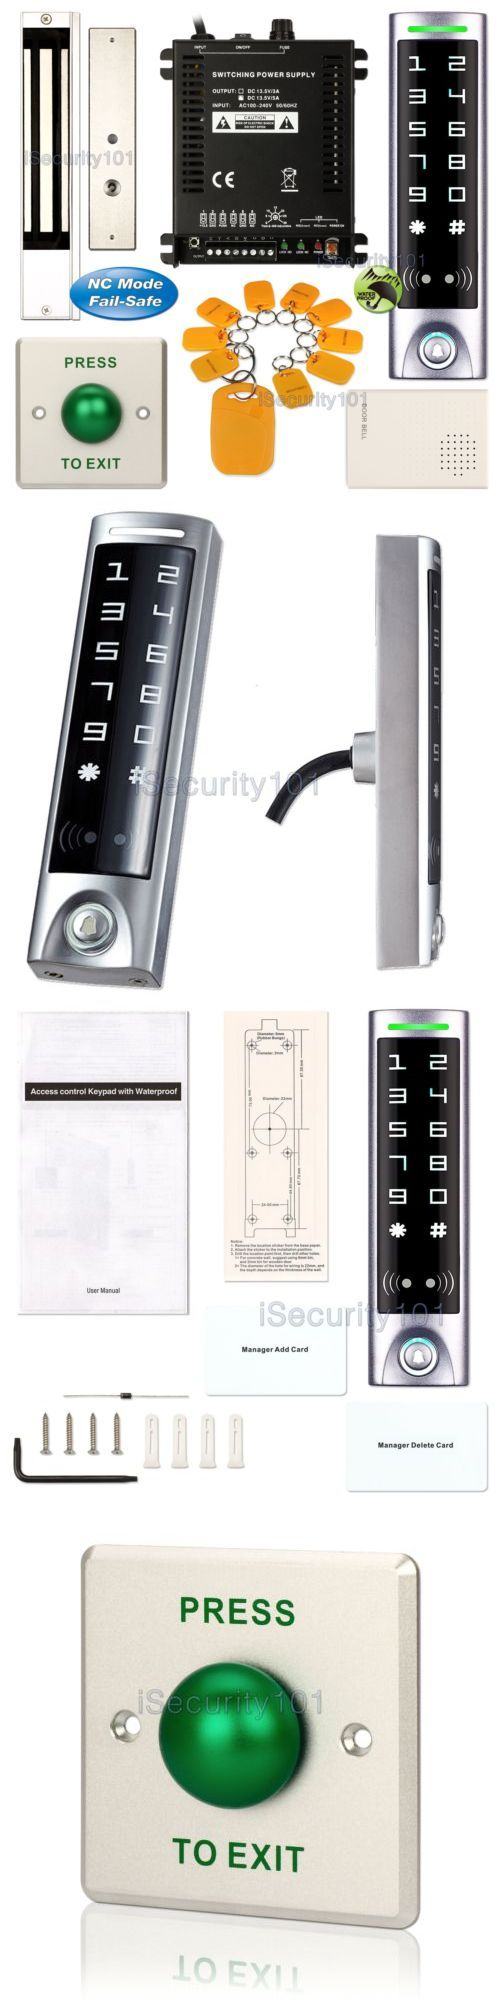 Intercoms and Access Controls: Diy Access Control Rfid Kit + Electric Magnetic Door Lock Nc Fail Safe BUY IT NOW ONLY: $169.99